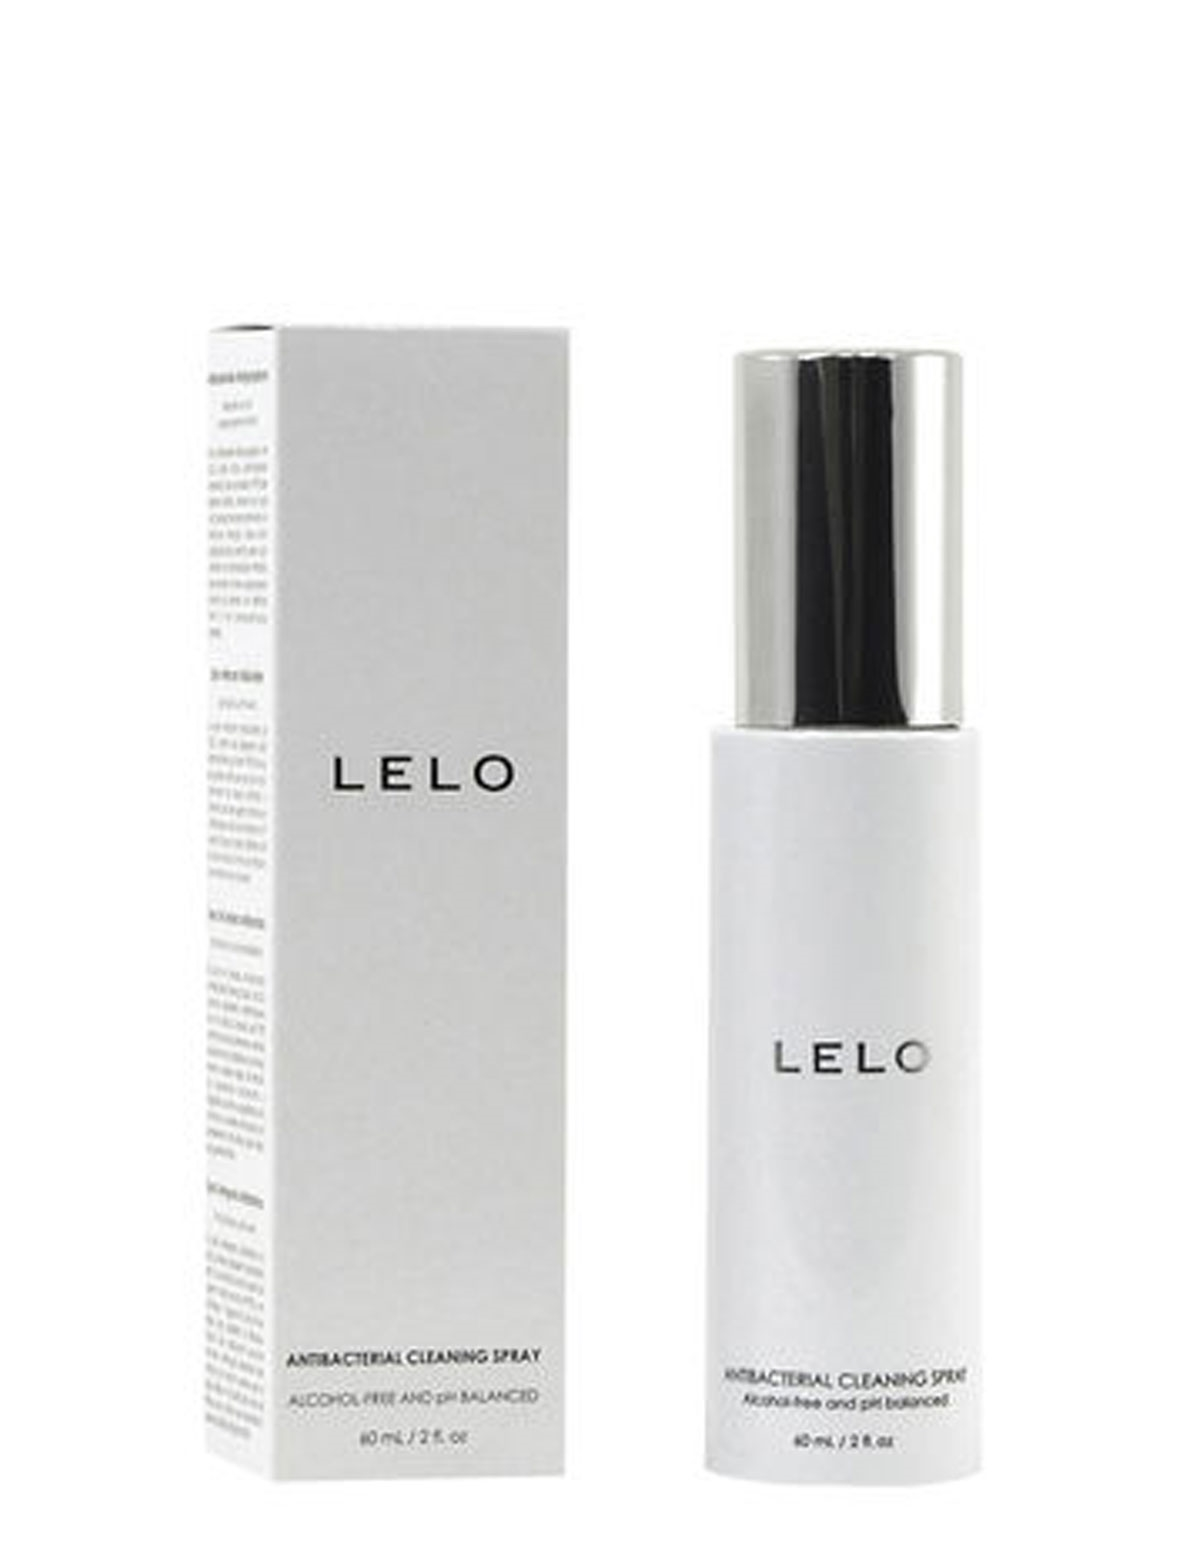 Lelo Cleaning Spray 2 Fl Oz